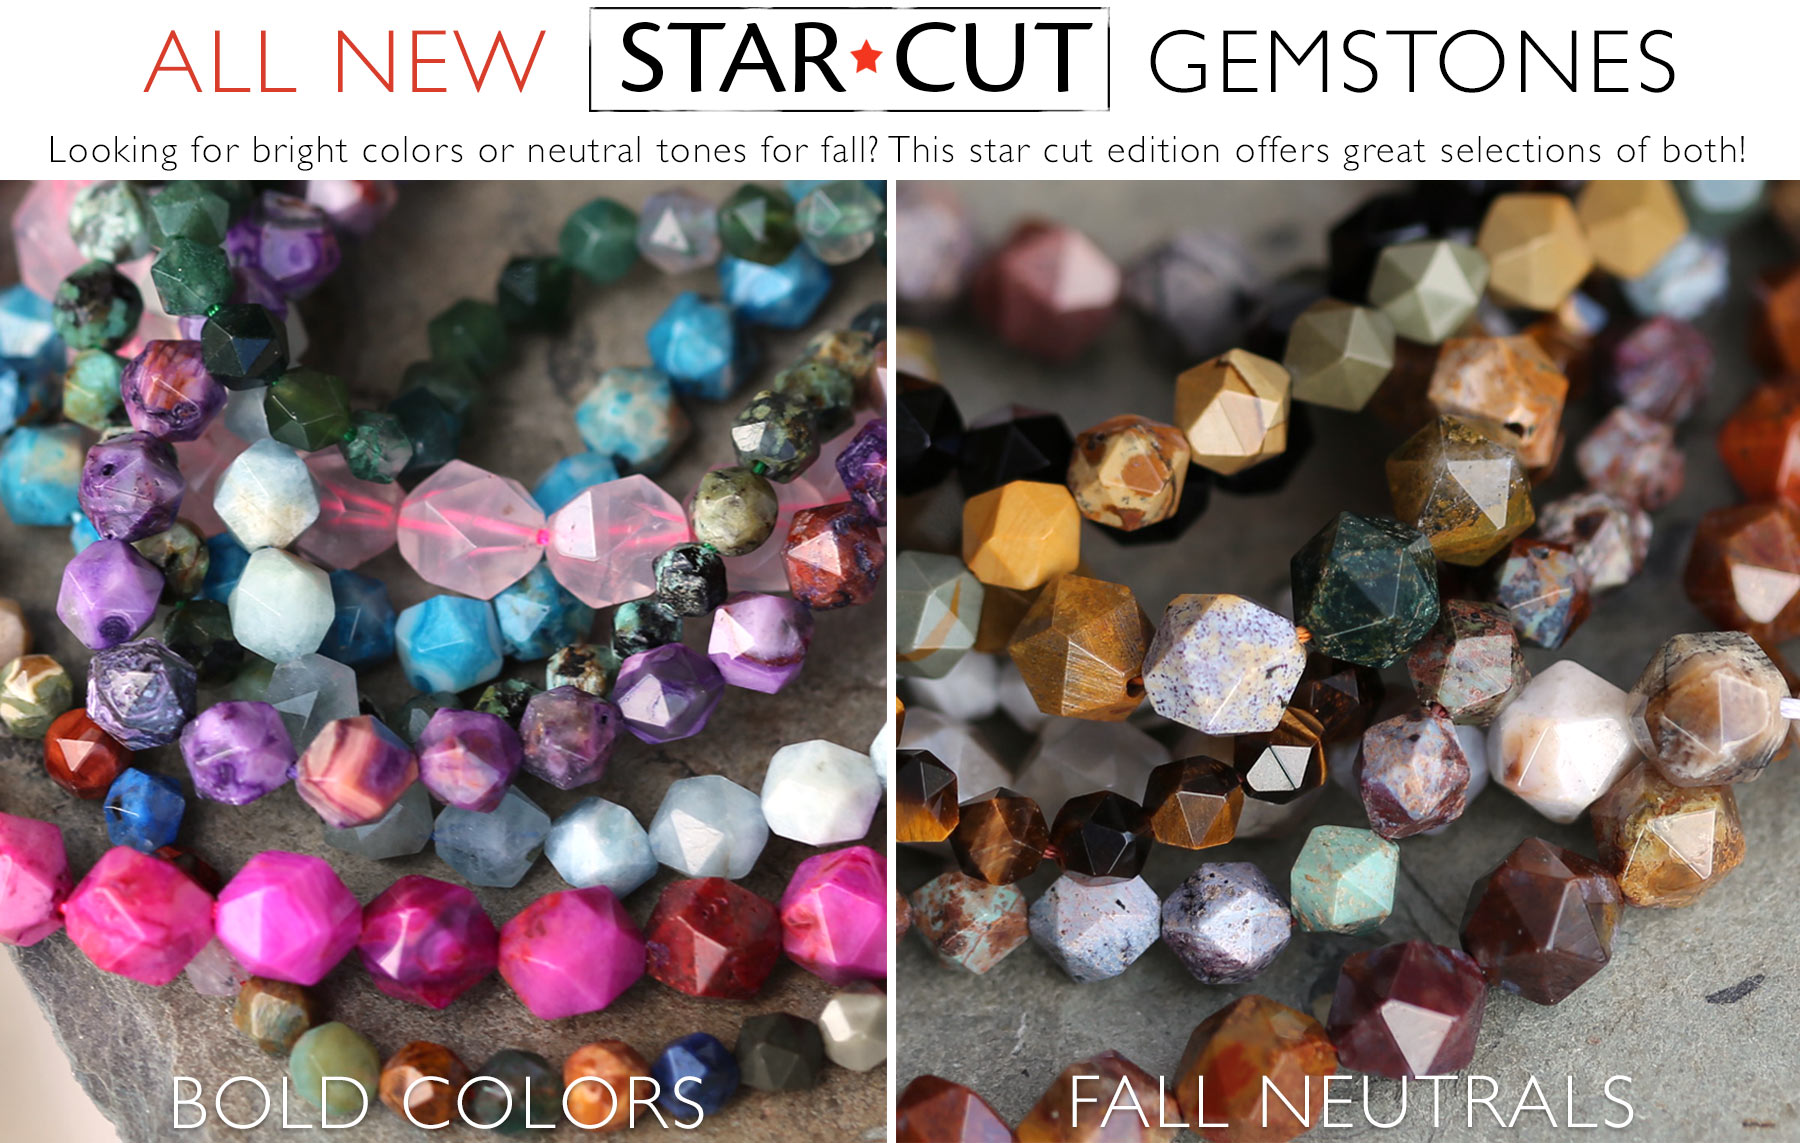 Star Cut Gemstones